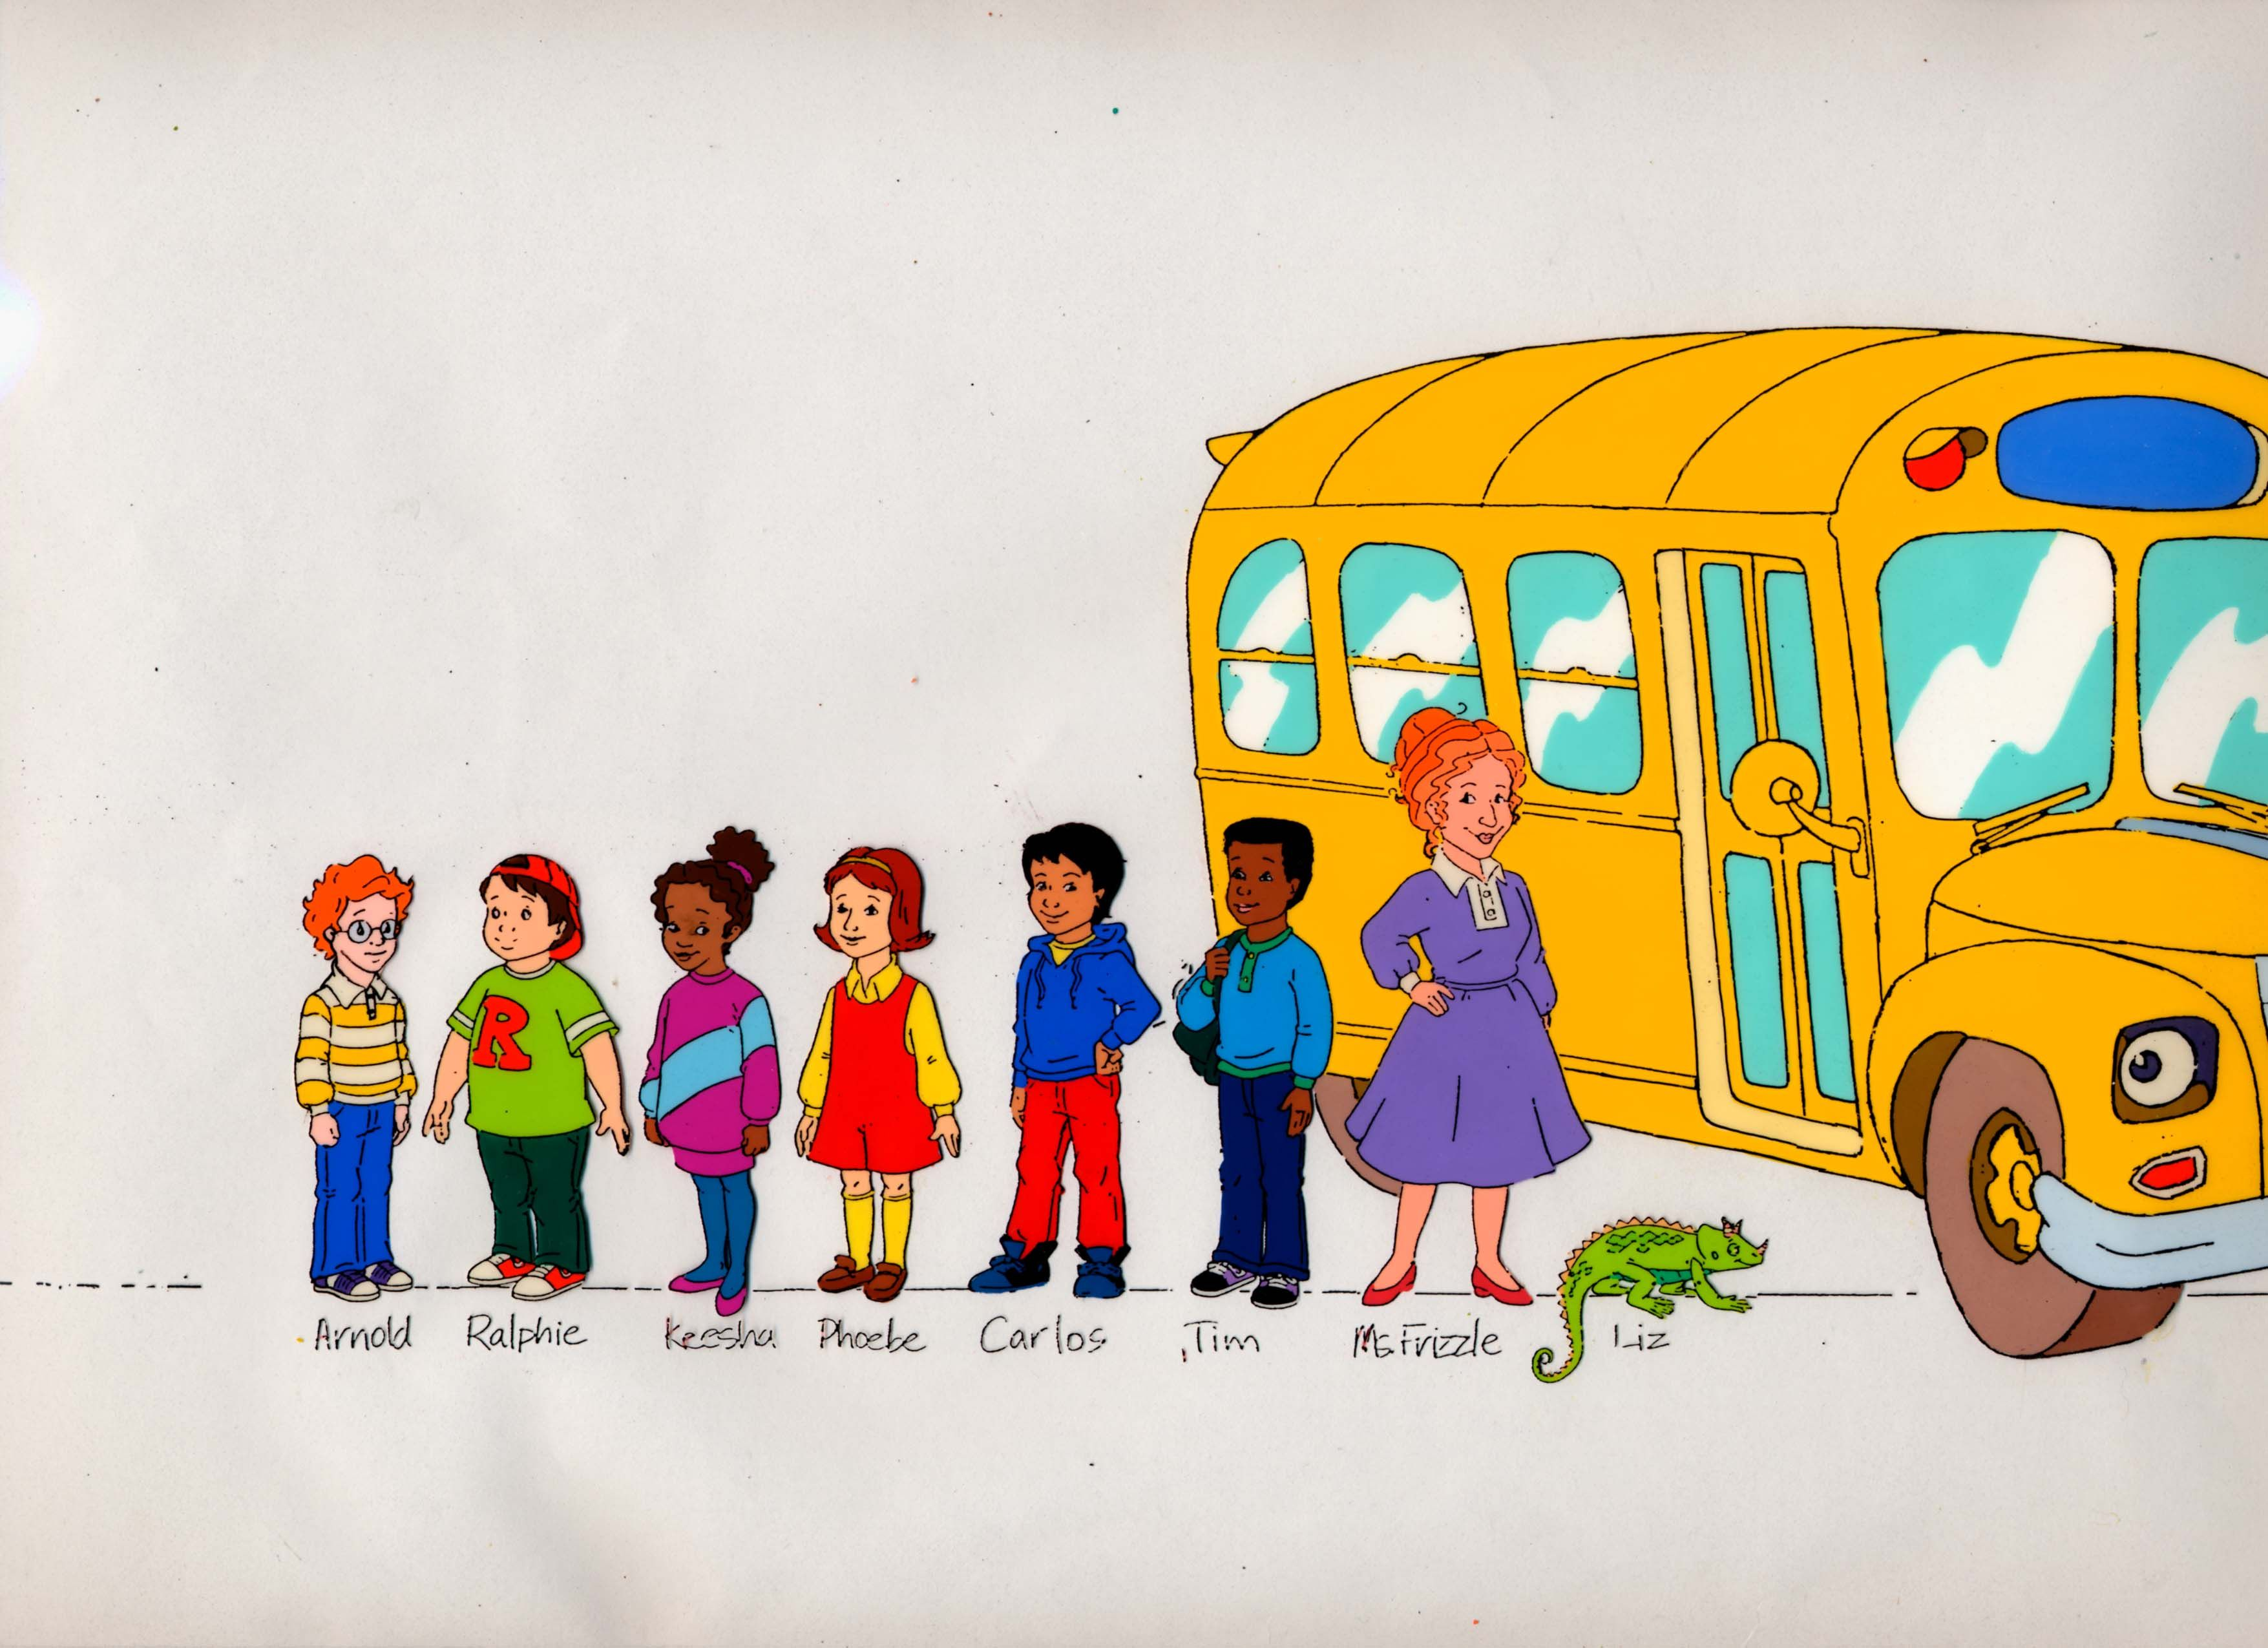 magic school bus cast - Google Search | Birthday number 4 (ideas ...